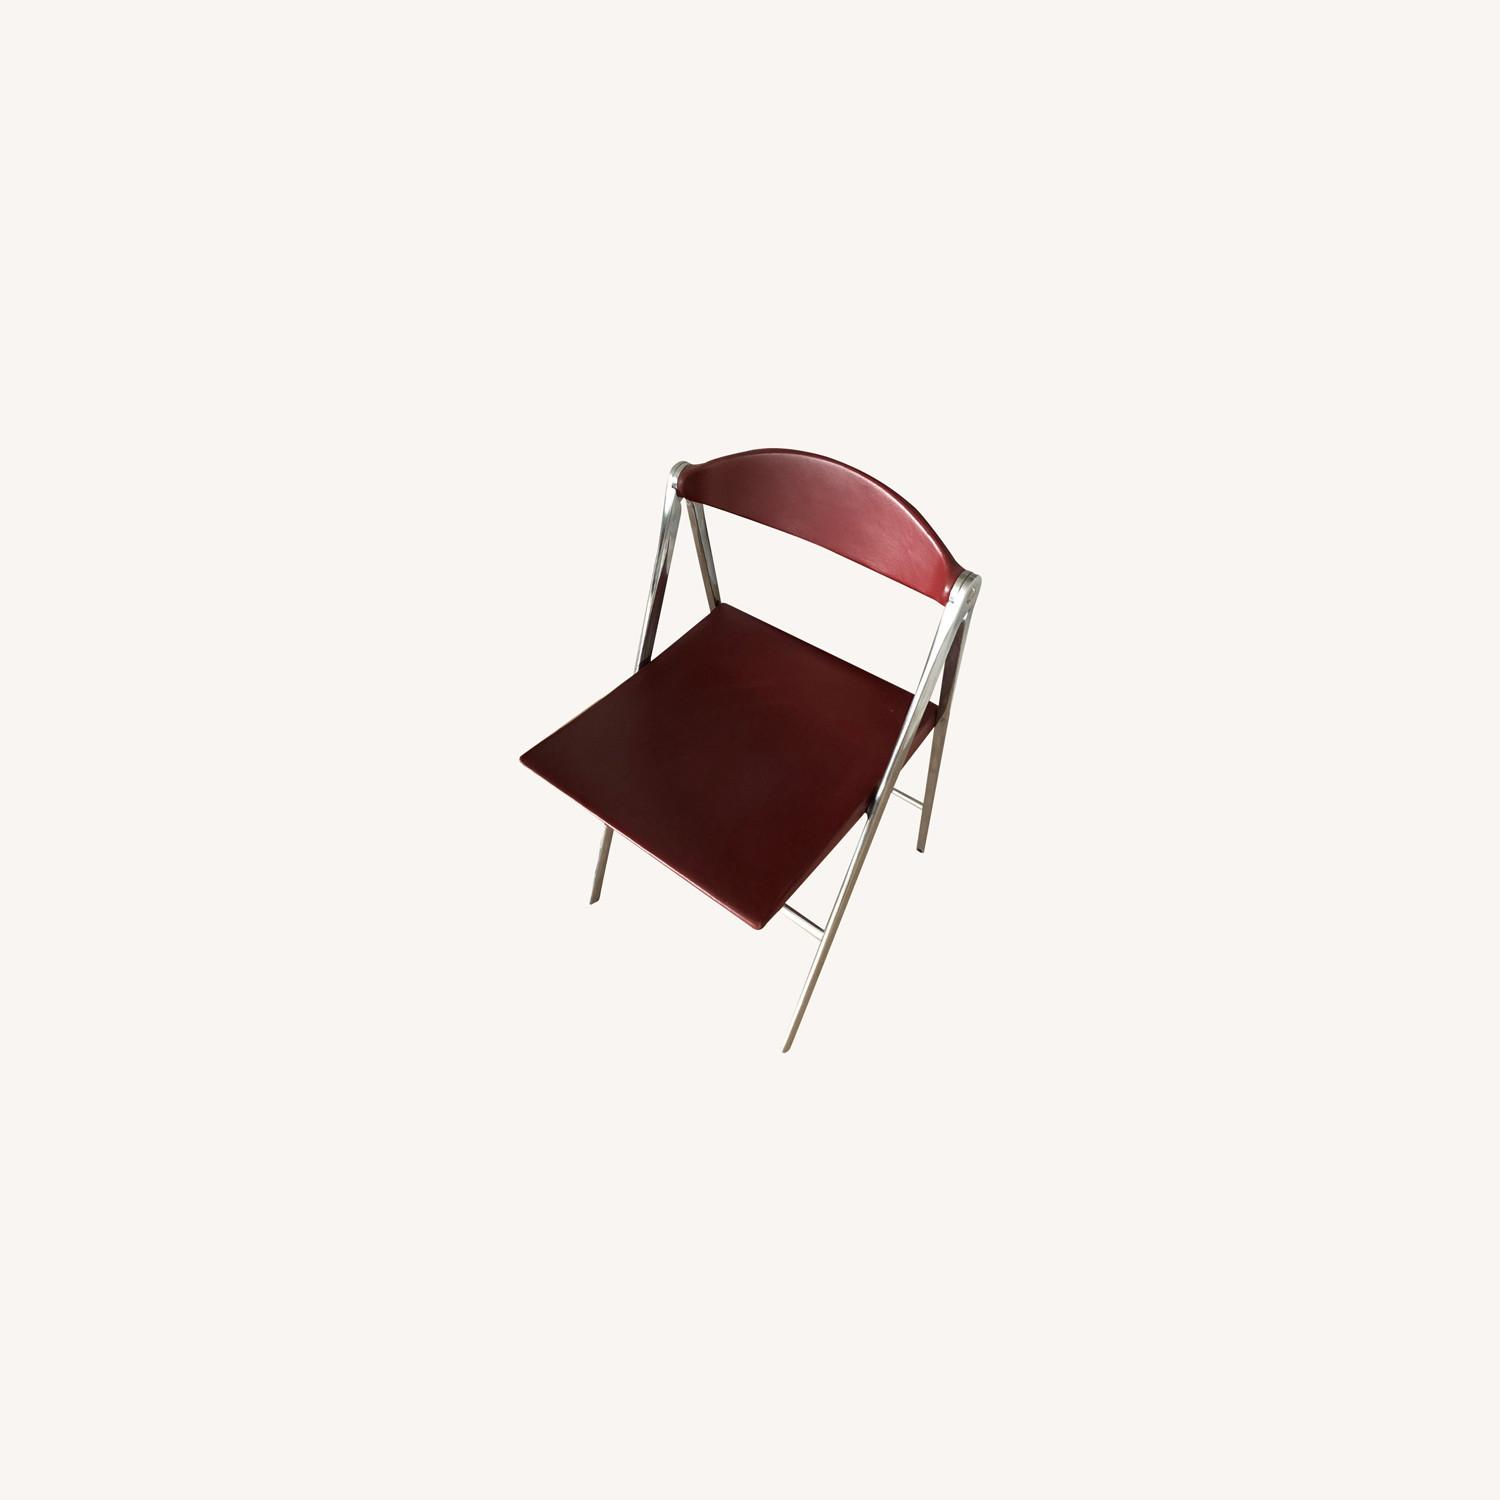 Poltrona Frau Leather Dining Foldable Chairs - image-0